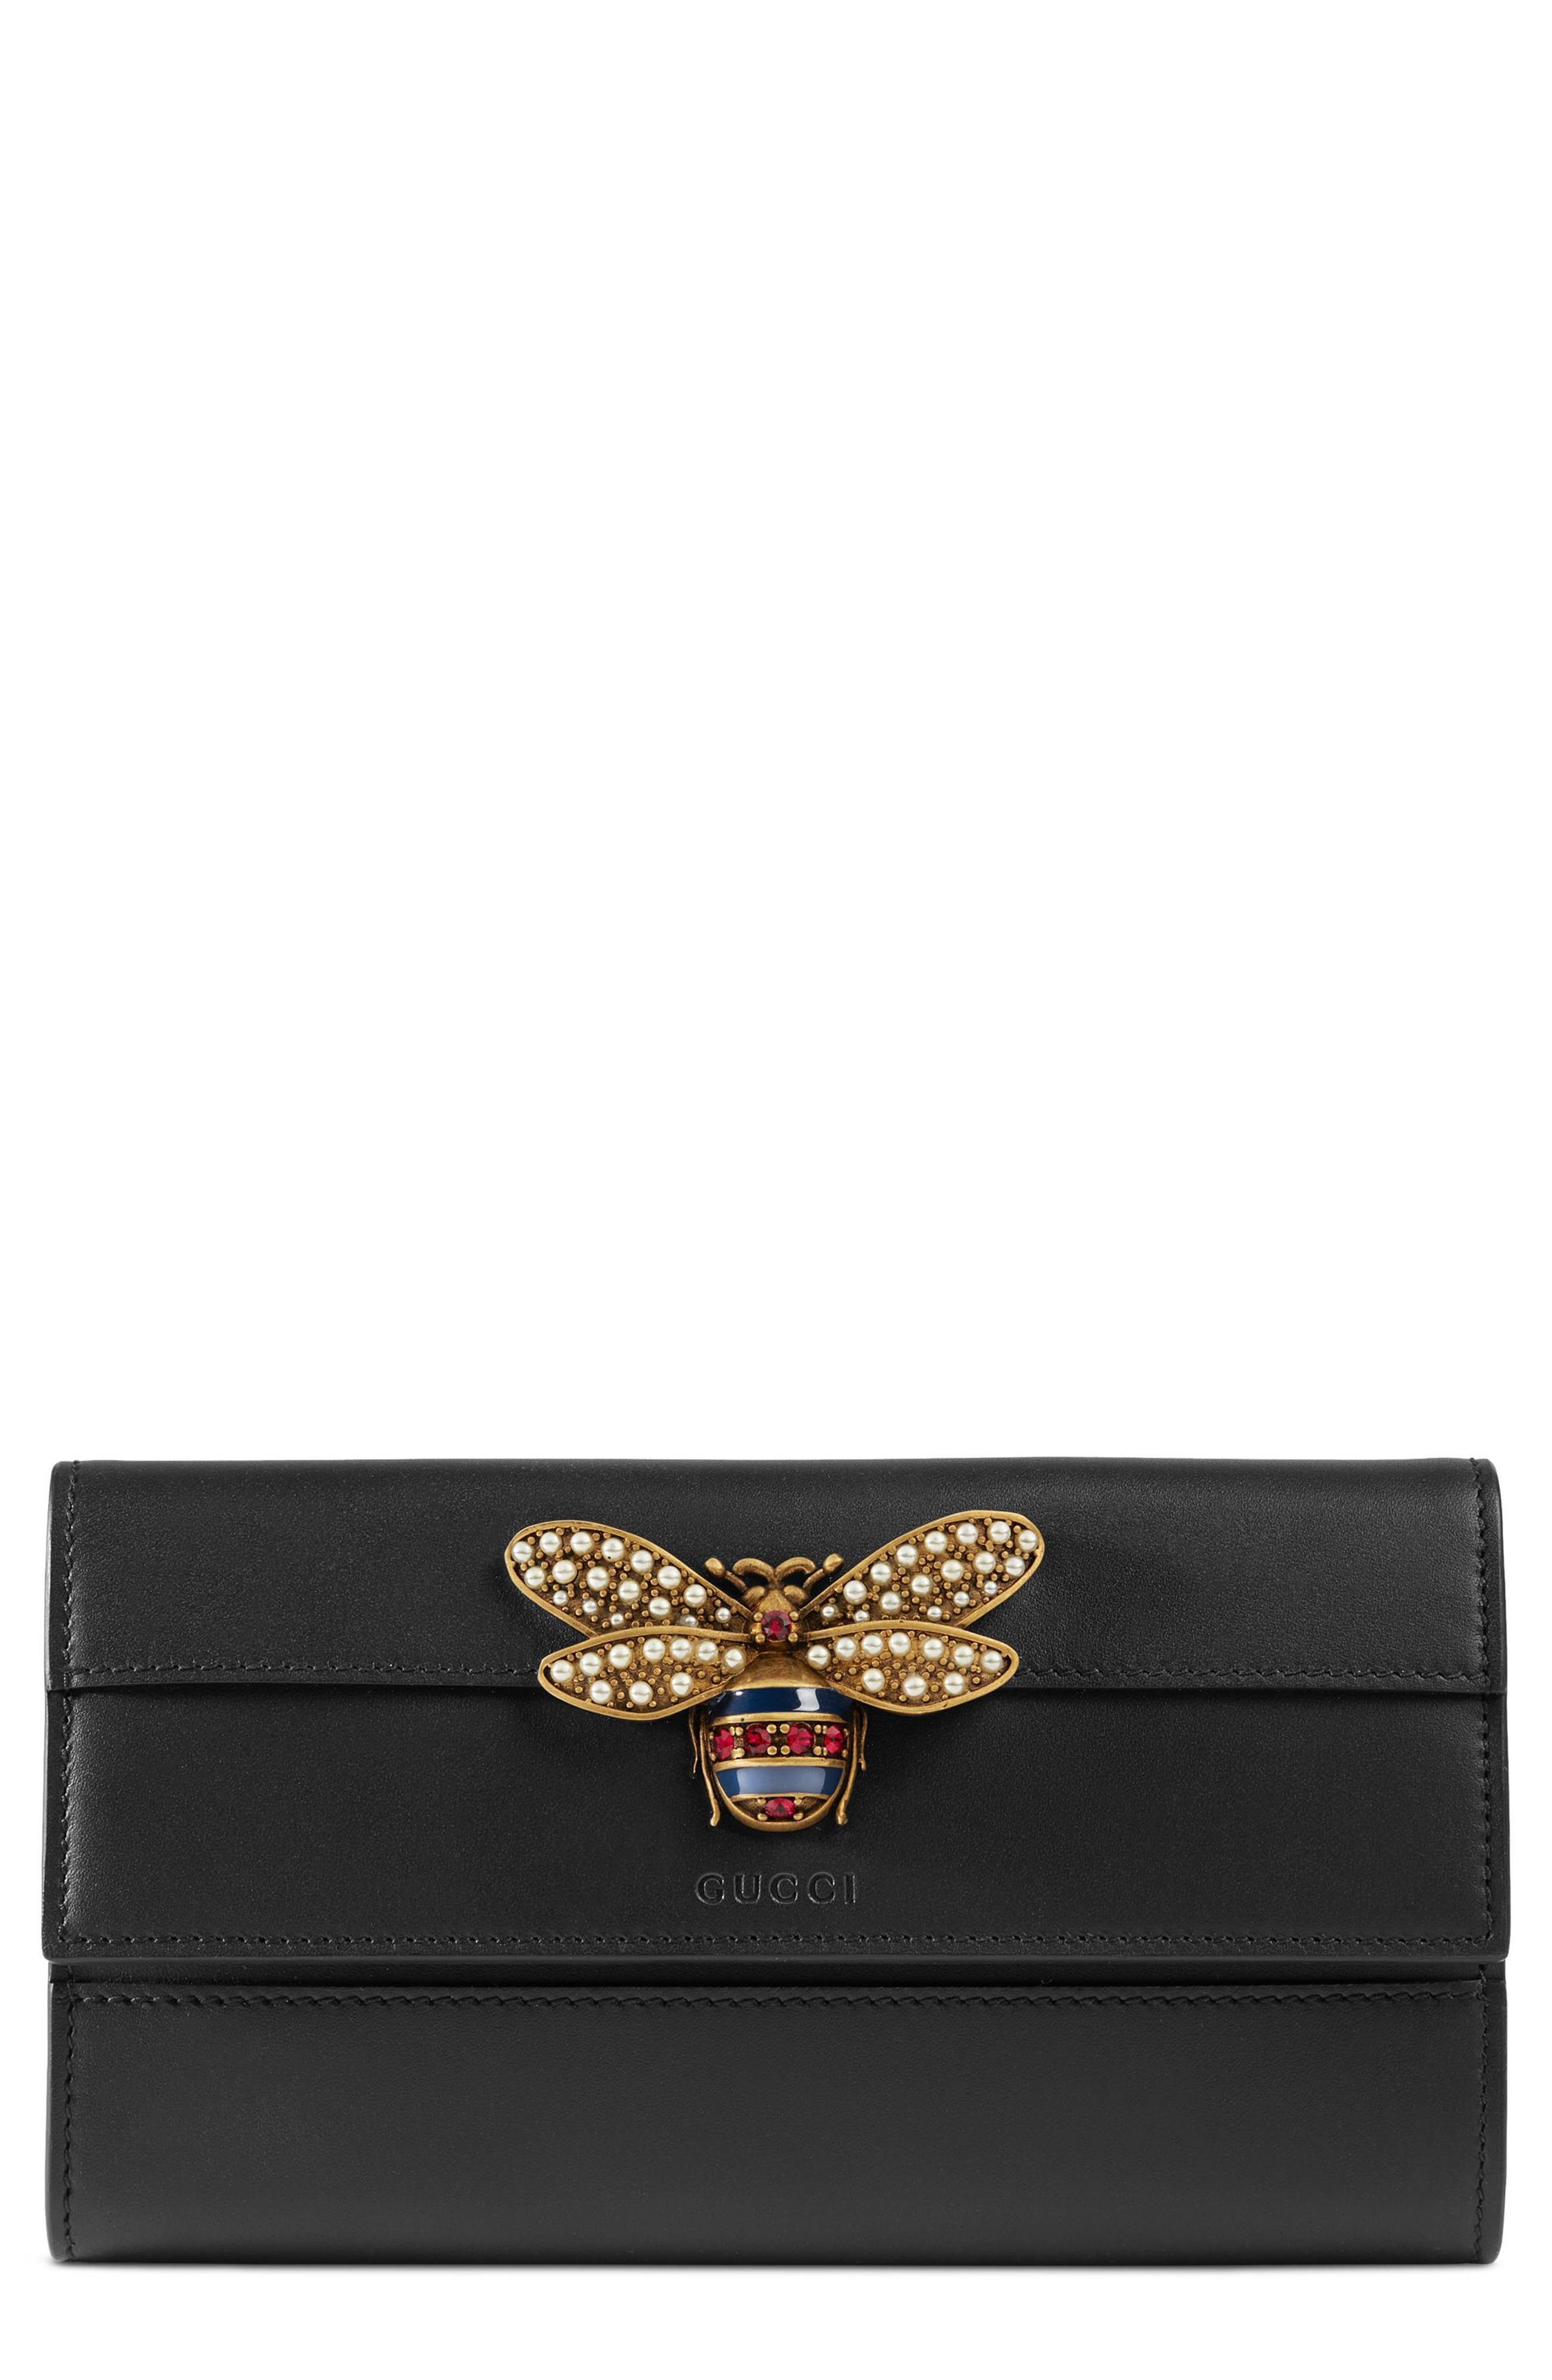 Queen Margaret Leather Flap Wallet,                         Main,                         color, NERO/ NERO/ RUBY